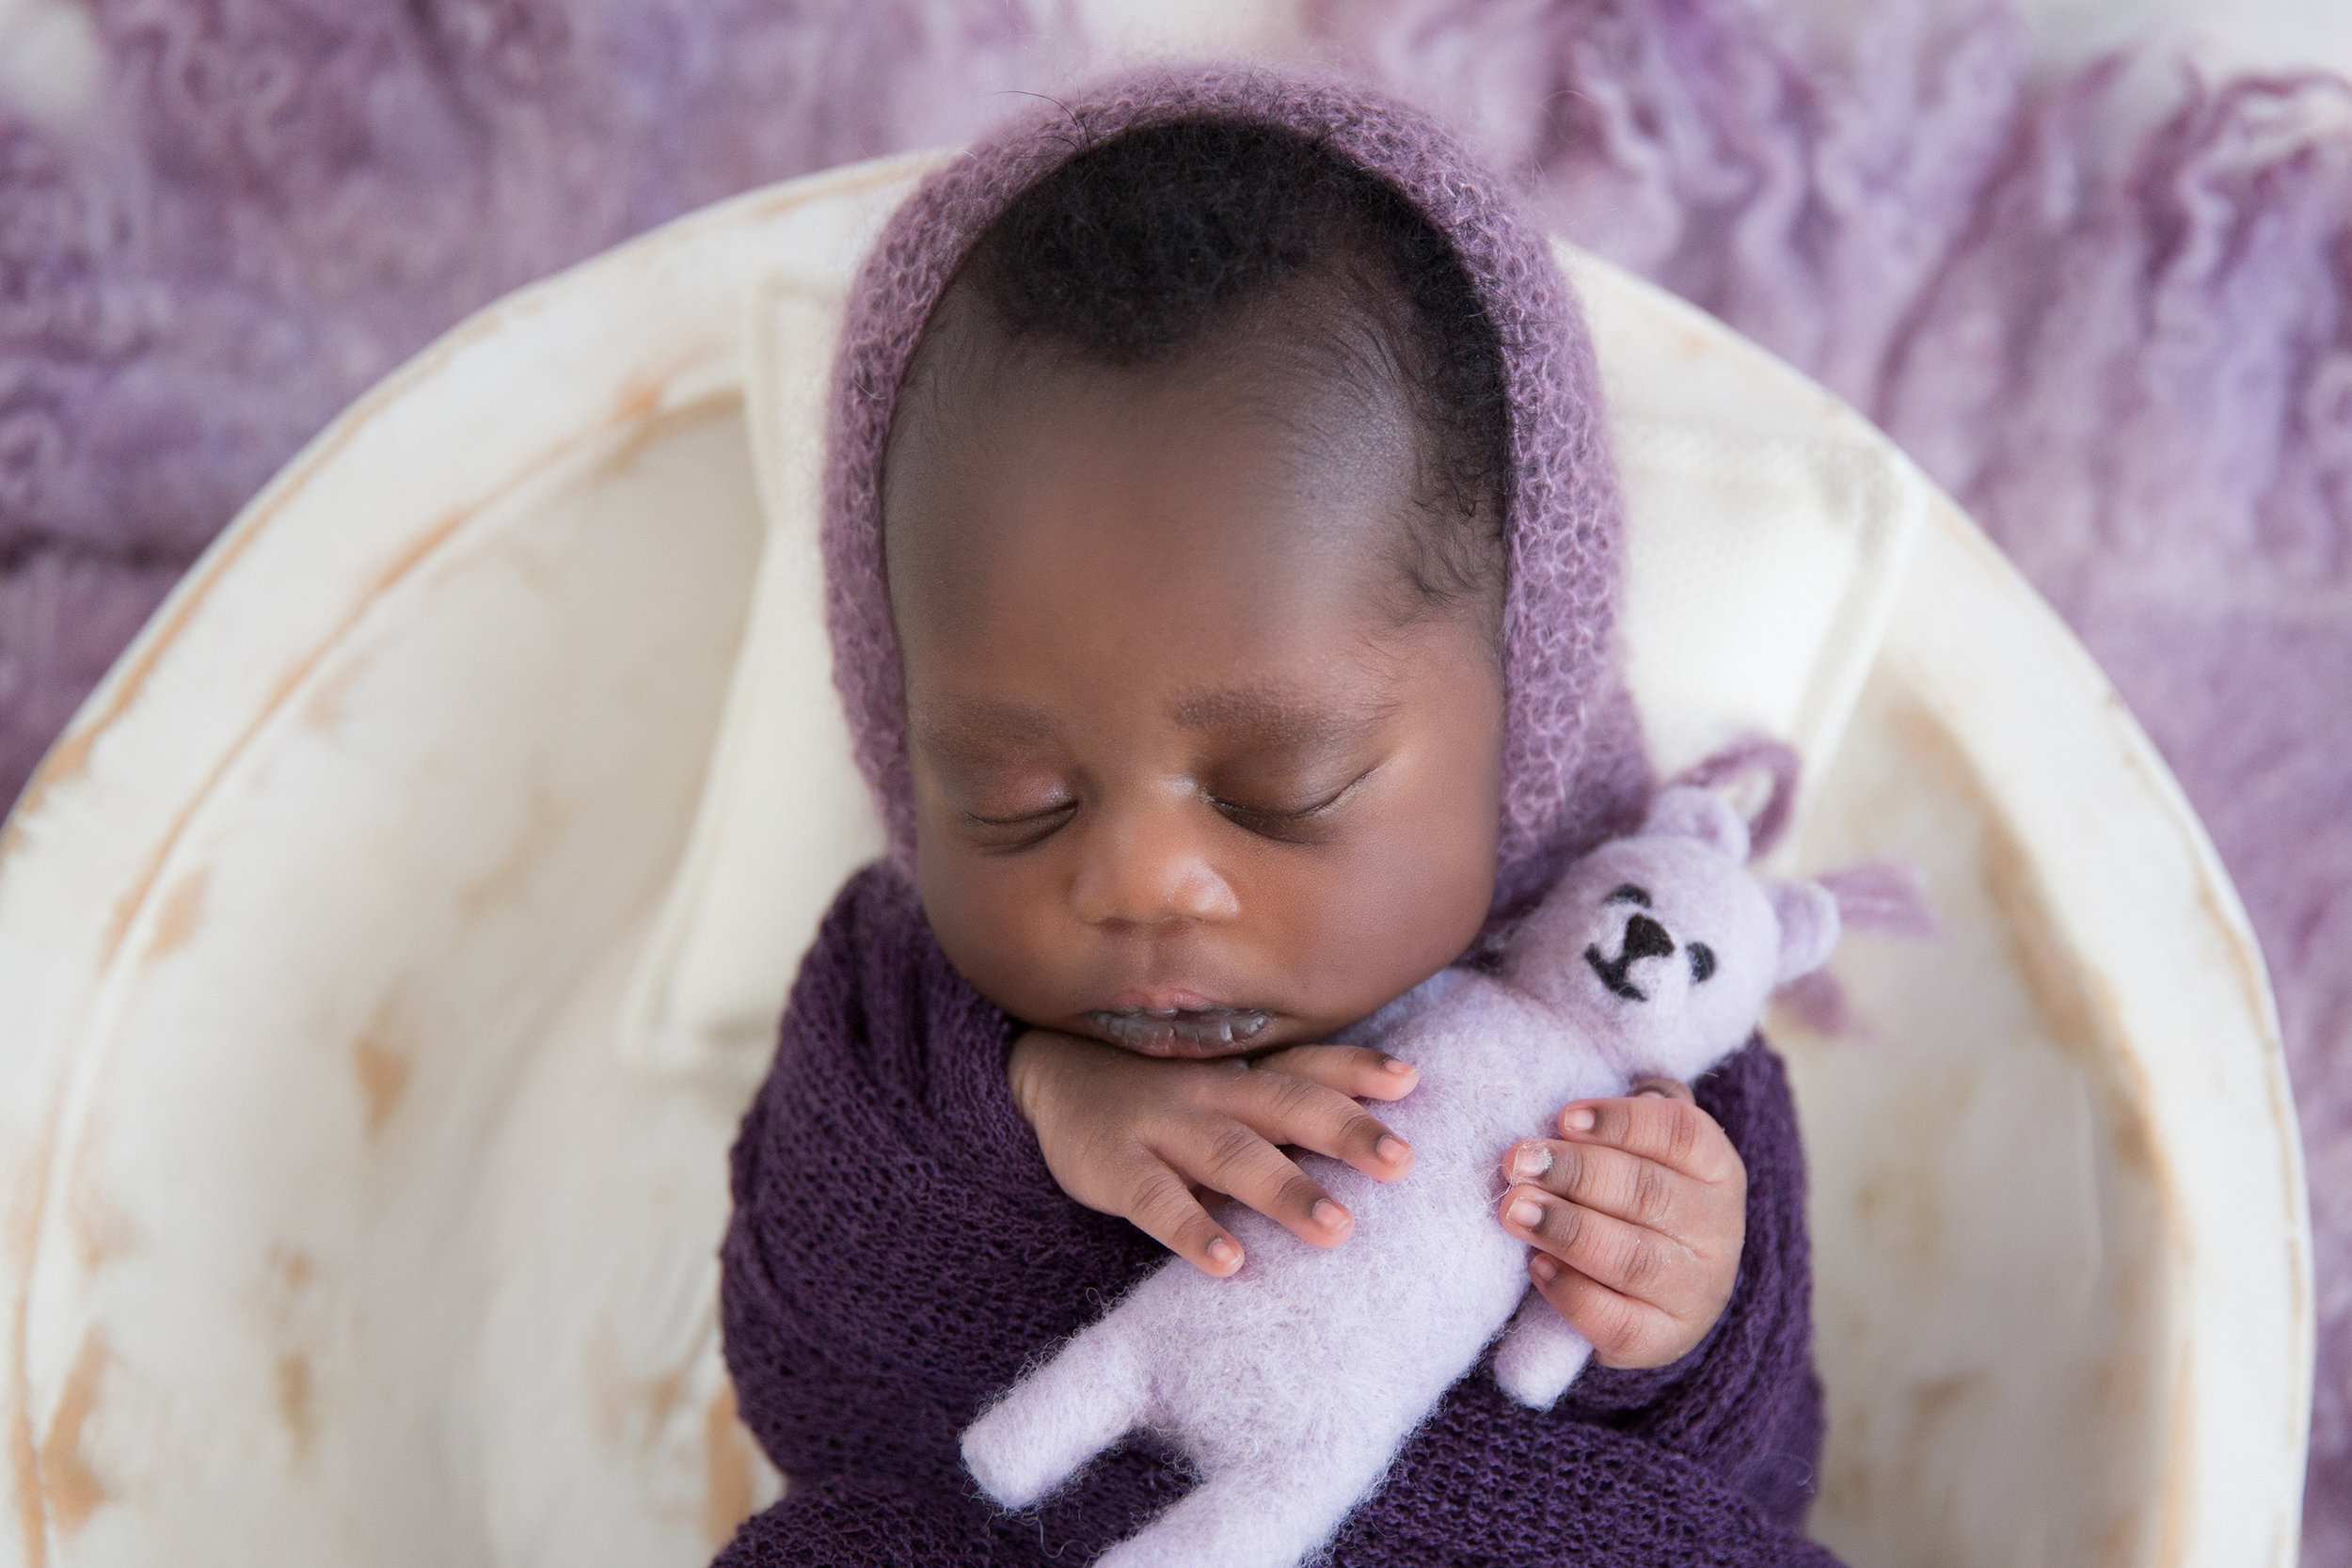 Newborn baby girl is holding a purple bear, wrapped in a purple wrap and wearing a purple hat, lying in a white wooden bowl. Newborn Photoshoot ideas. Calgary and Airdrie Newborn photographer